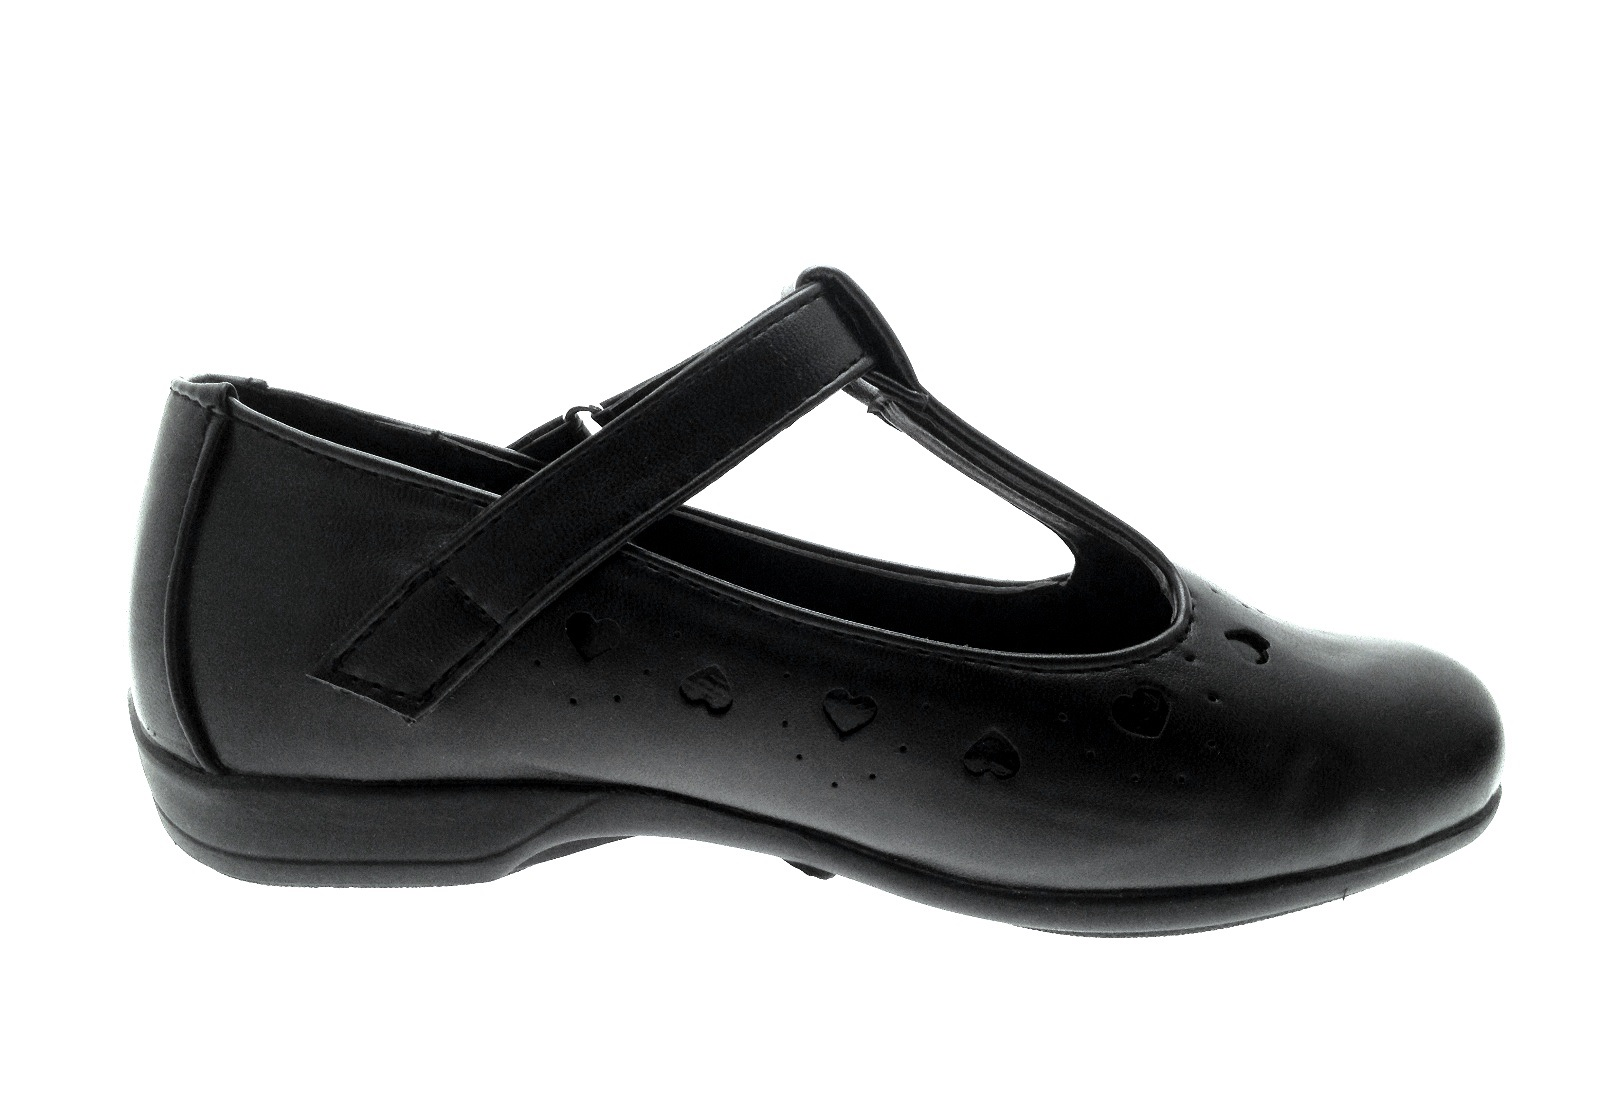 Kids S Black School Shoes Faux Leather T